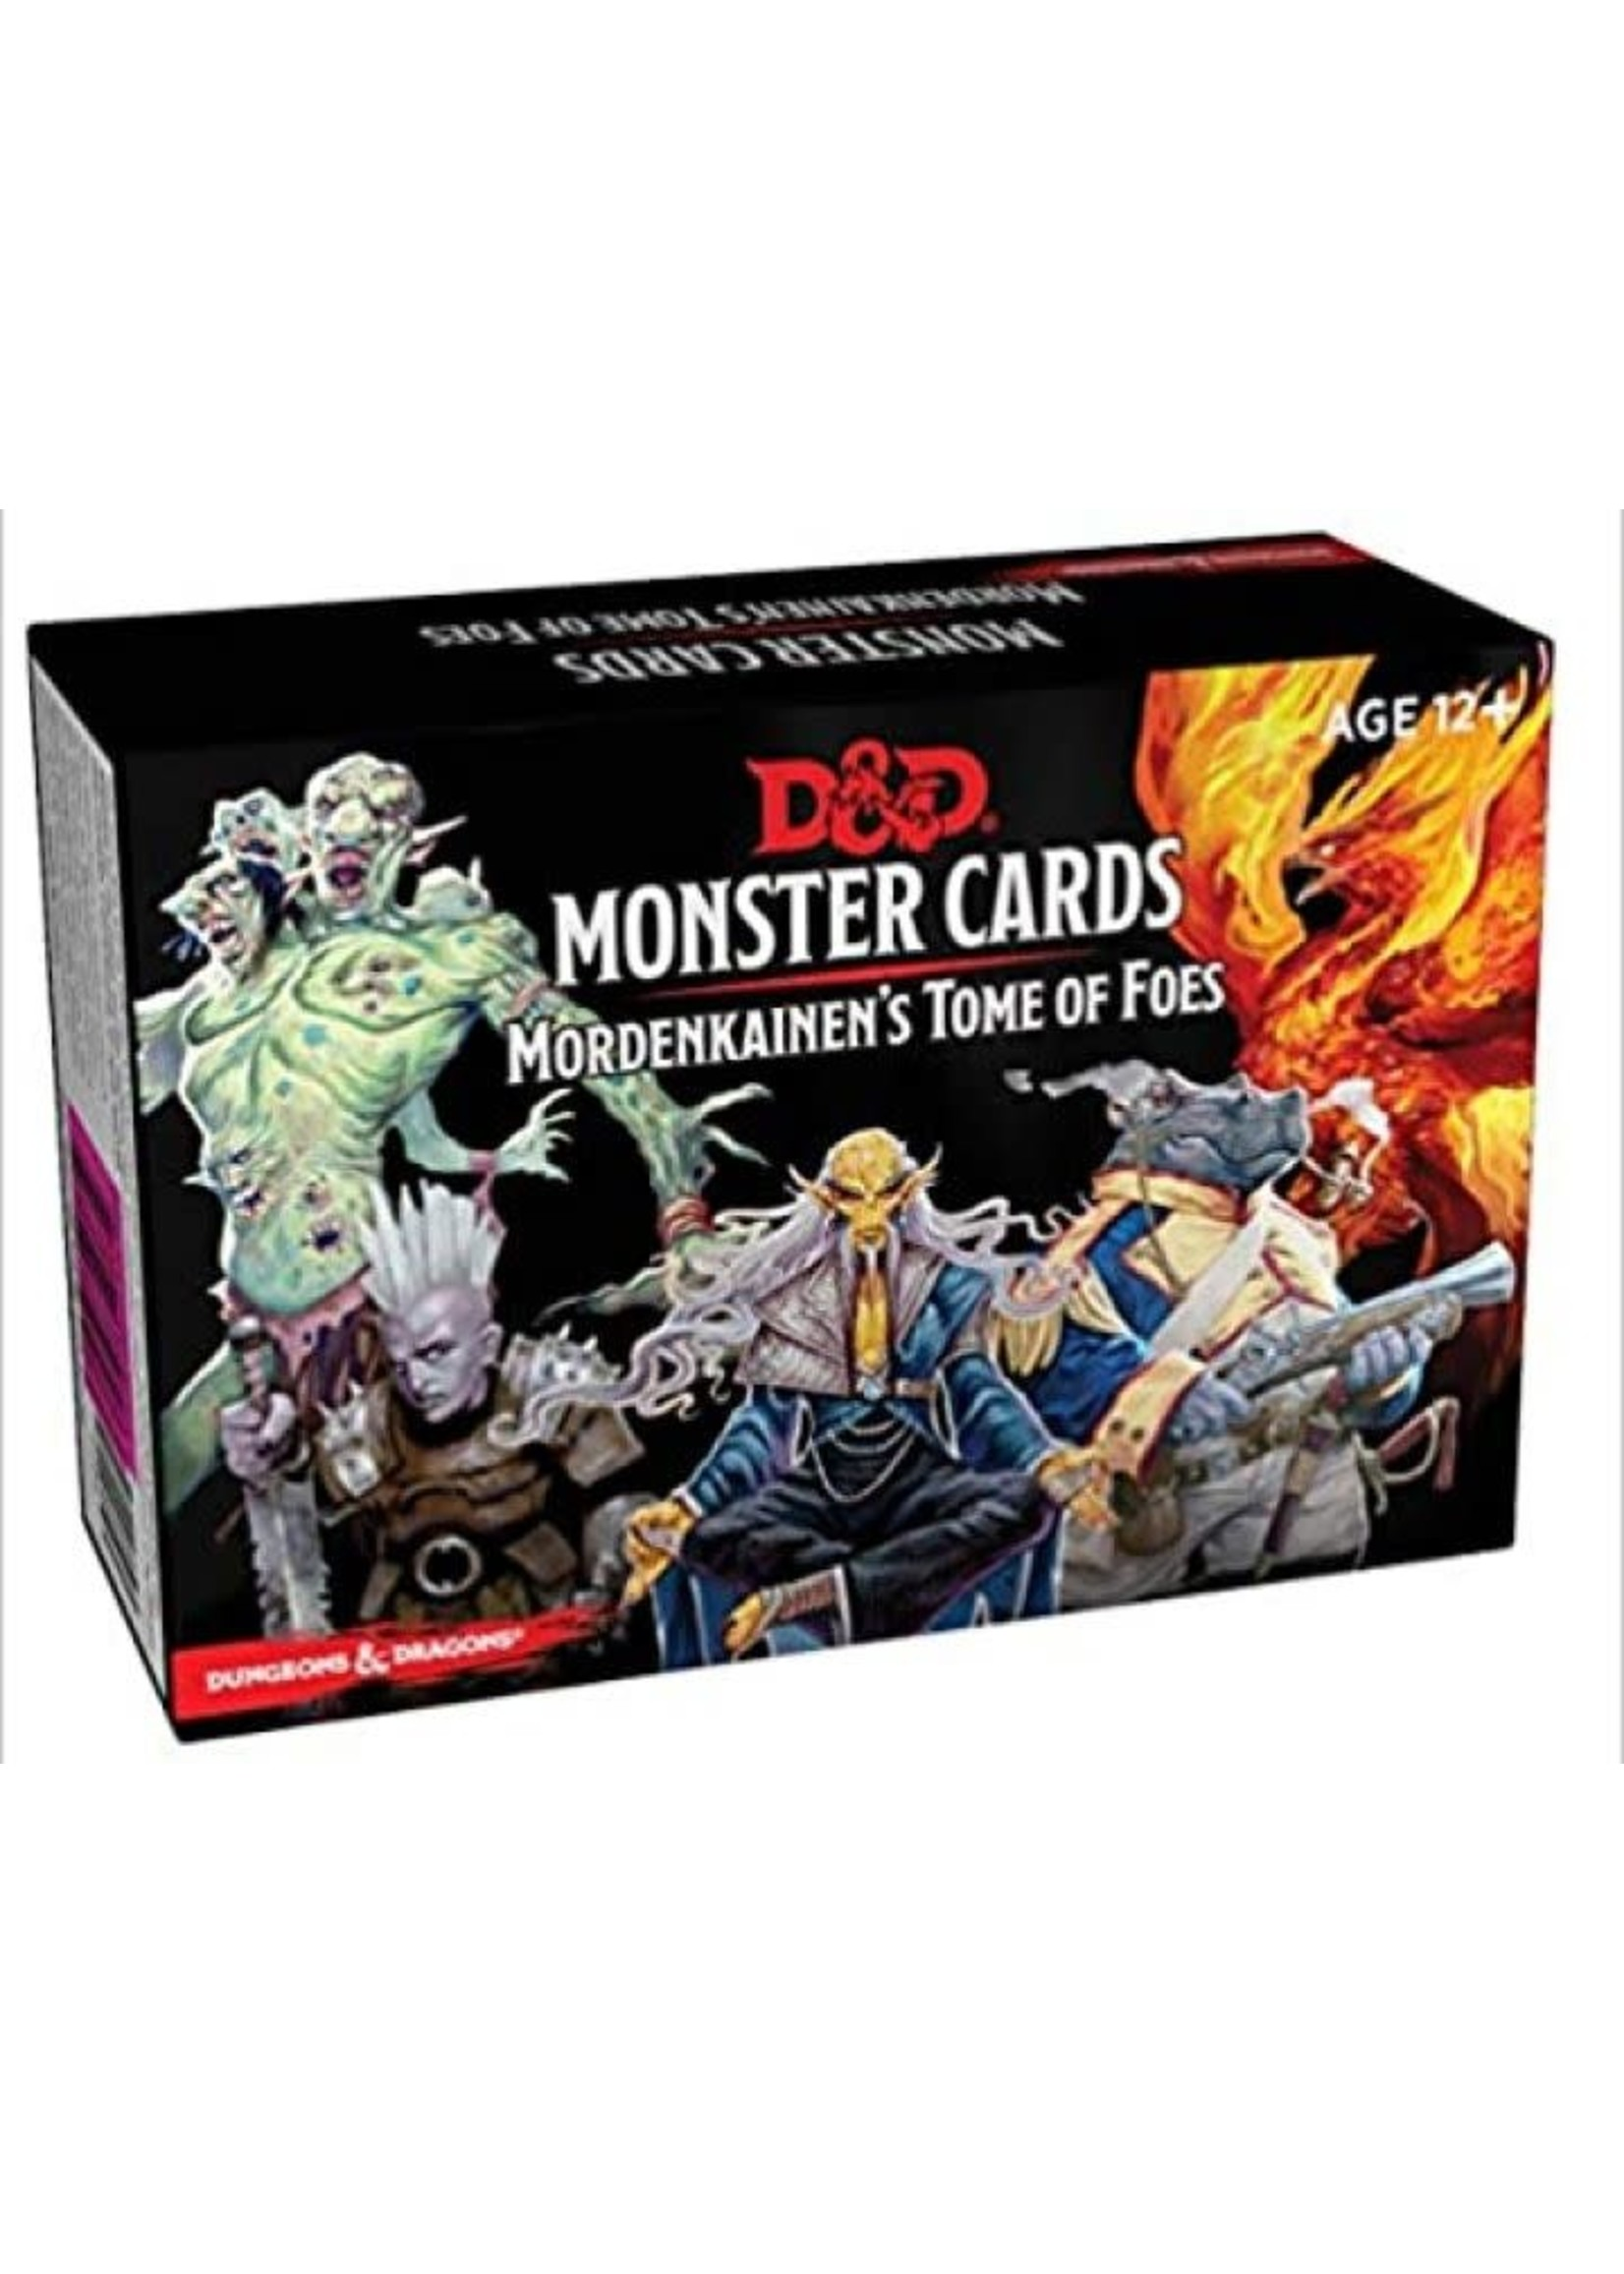 D&D Monster Cards - Mordenkainens Tome Of Foes